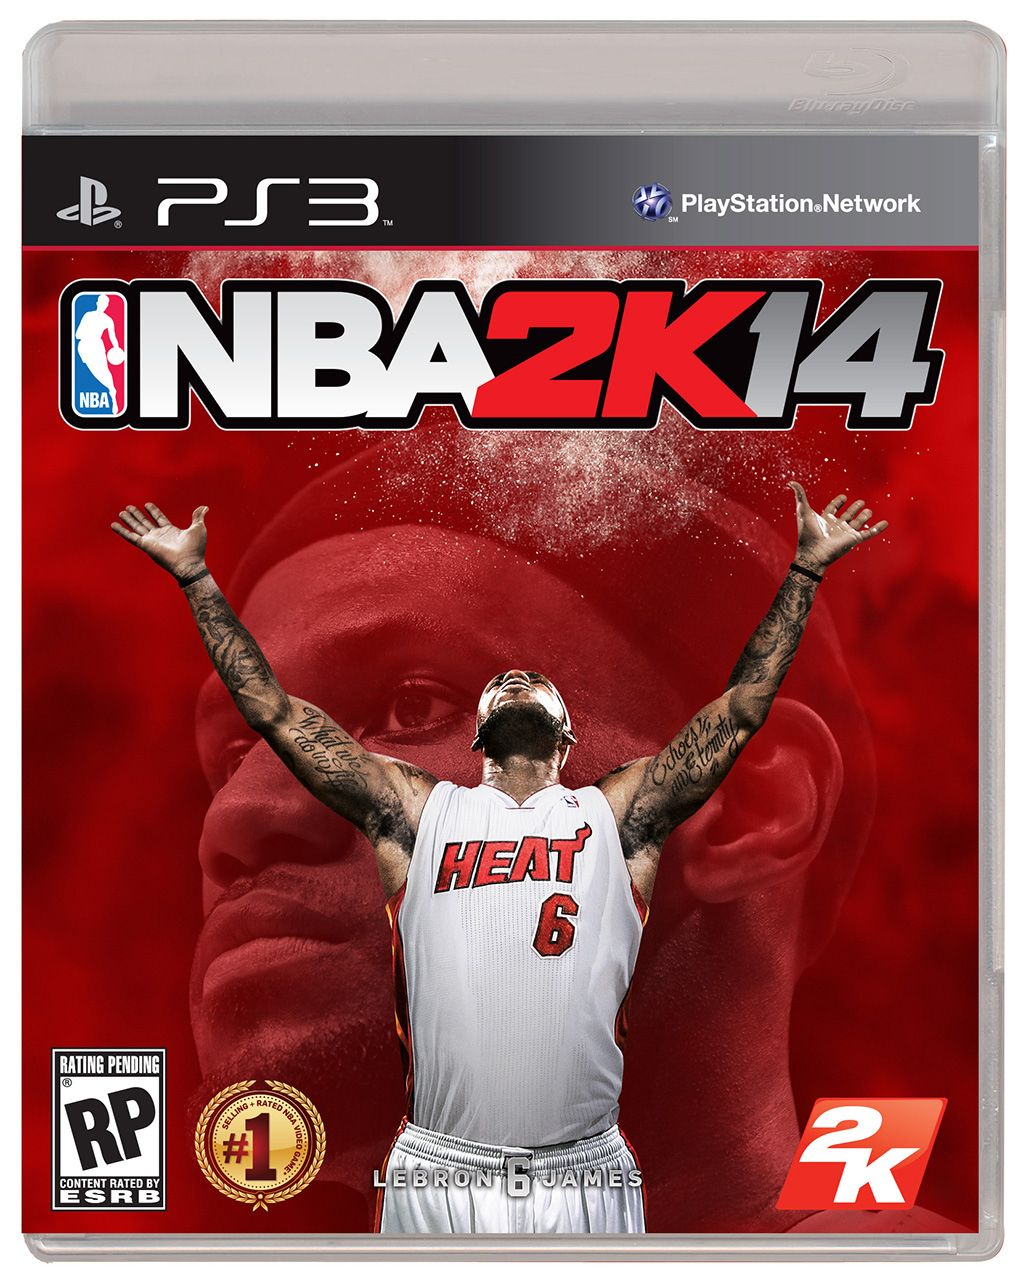 Nba2k14 Not My Favourite Player But Playstation Video Games